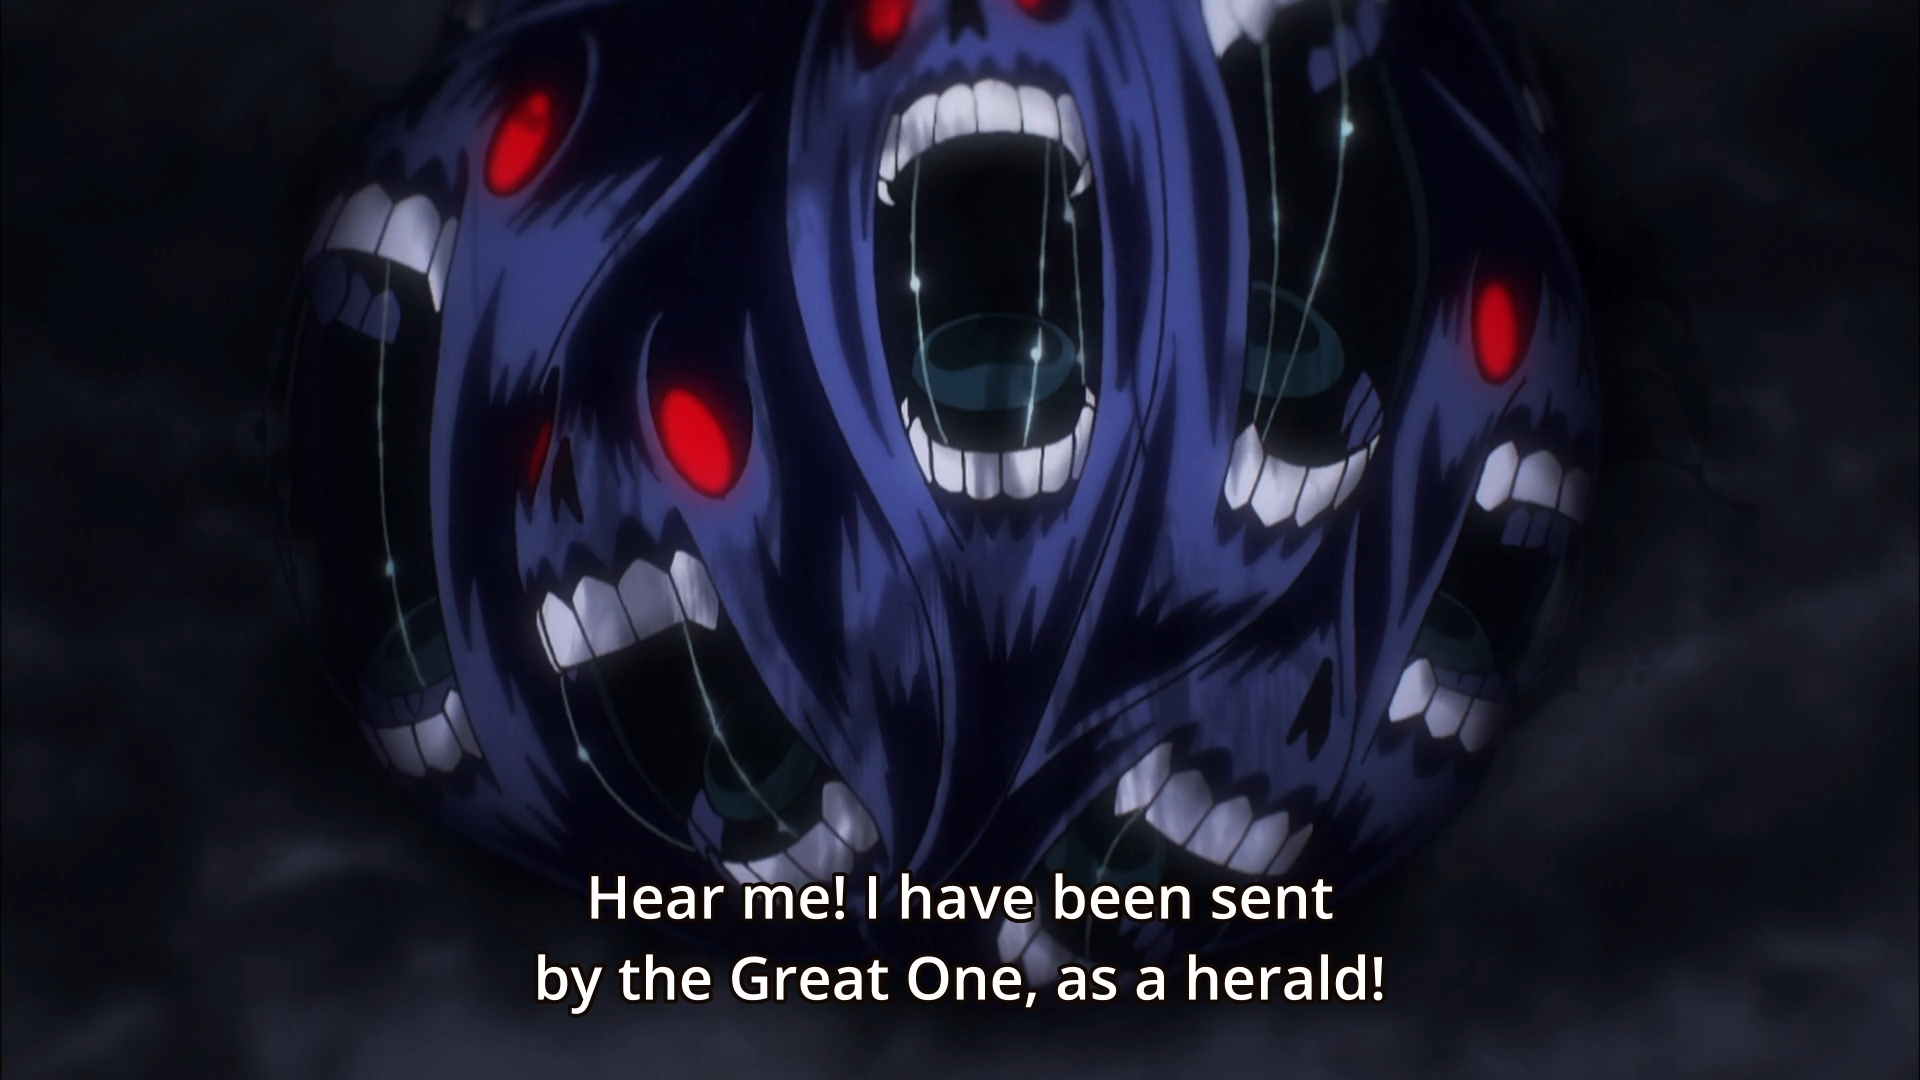 Overlord And Overlord Ii Ep 1 What Is This Moe Sucks Twist.moe is a free anime streaming site. overlord and overlord ii ep 1 what is